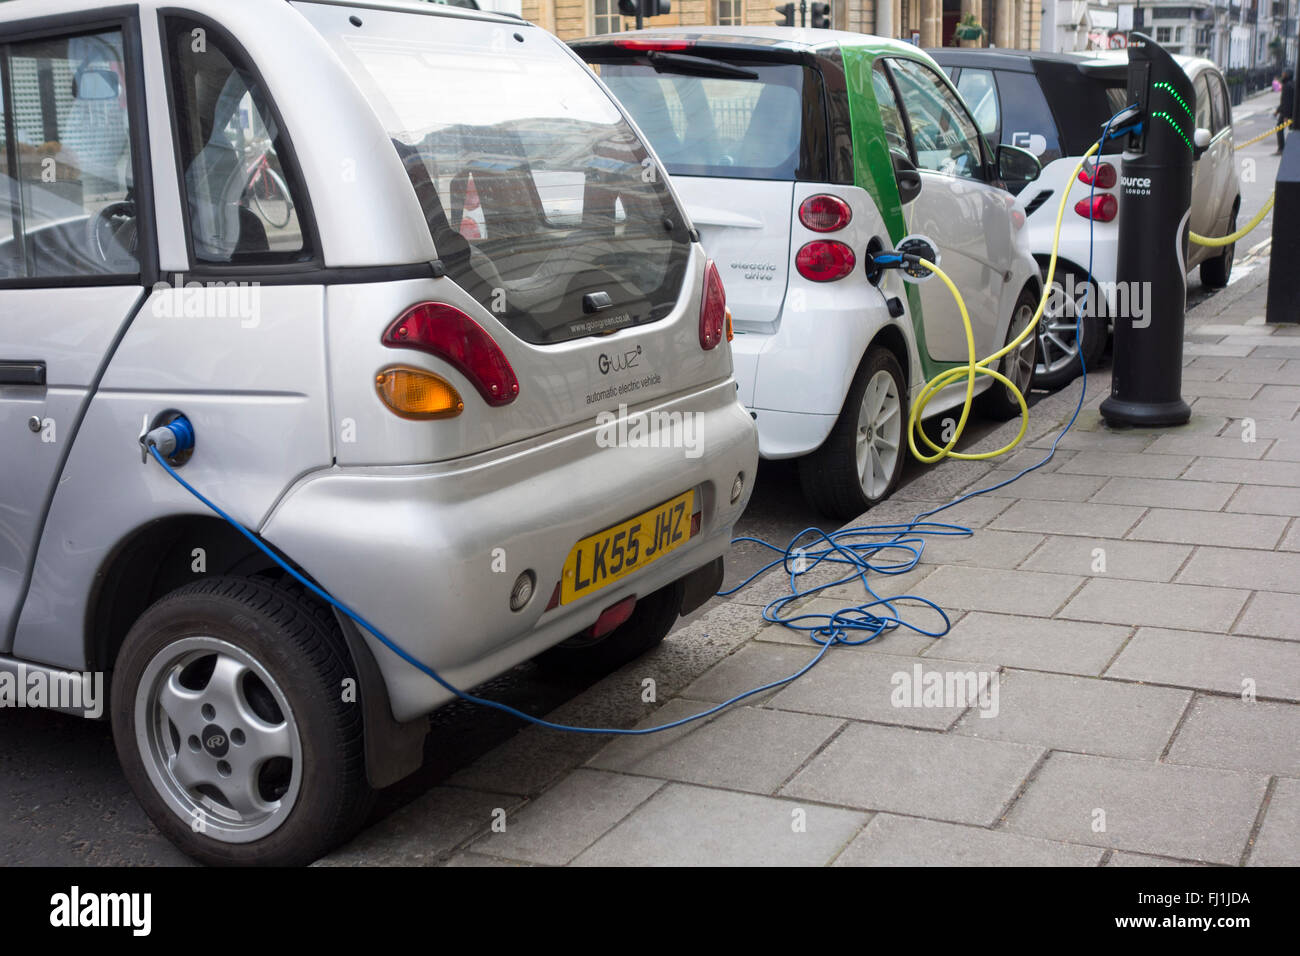 Electric vehicles plugged into charging points on a road in London, UK Stock Photo